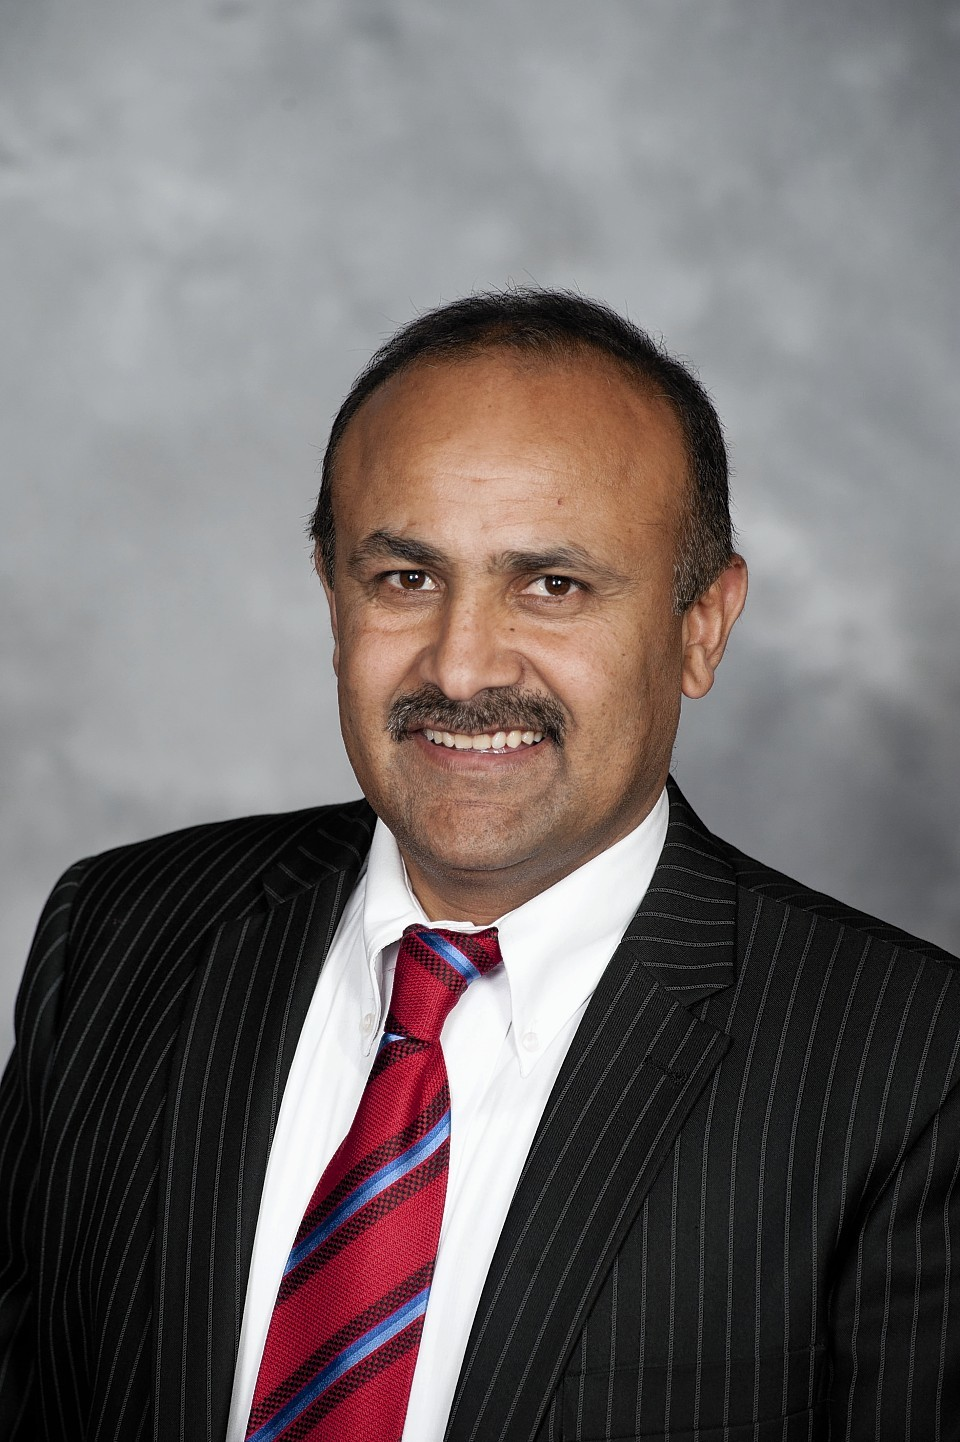 Councillor Malik has criticised the decision